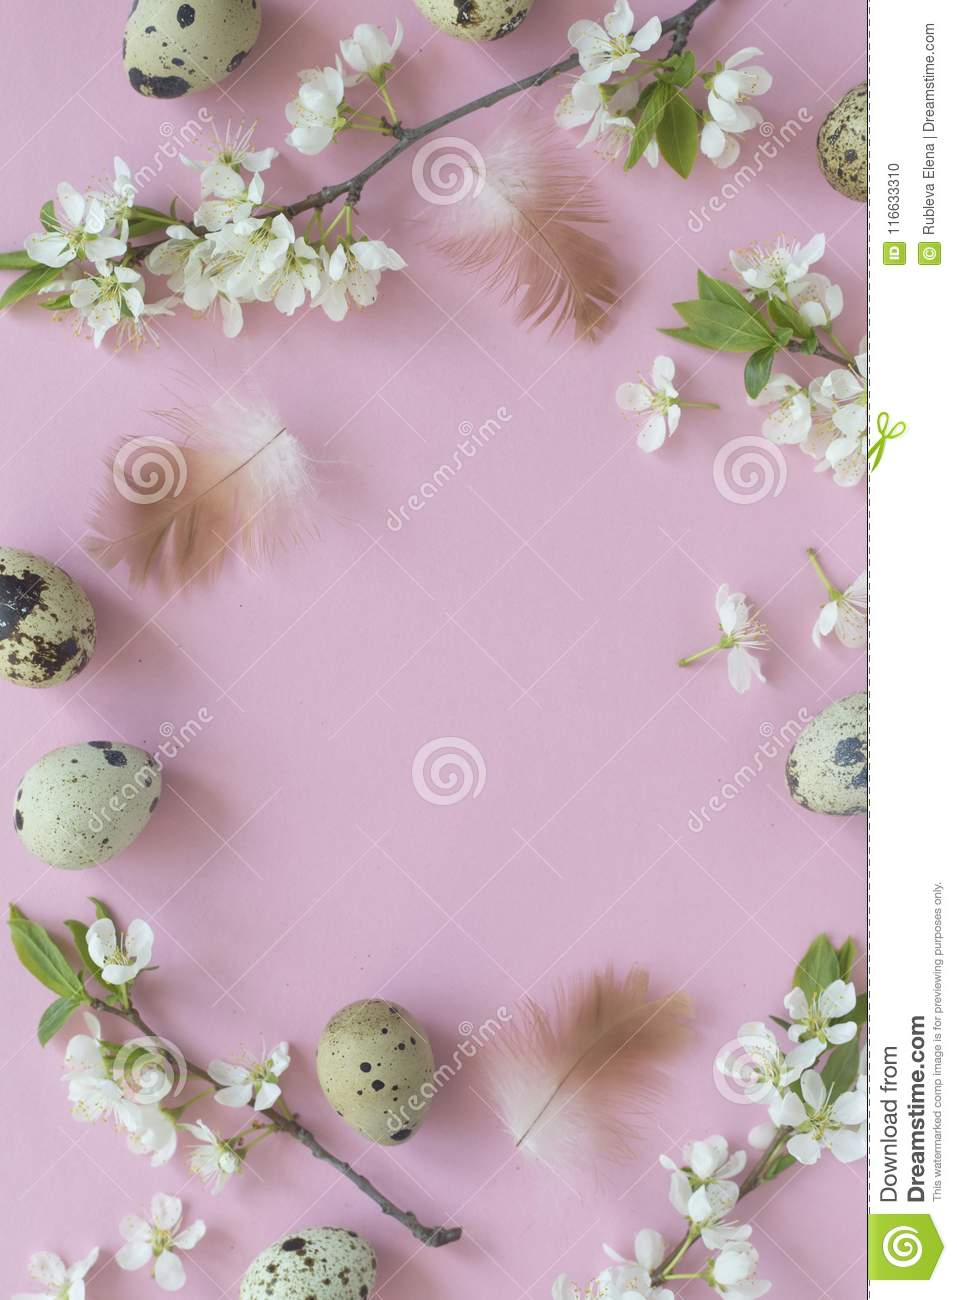 Easter backgroundwith eggs and blossom over light pink pastel background, top view with space for your text.